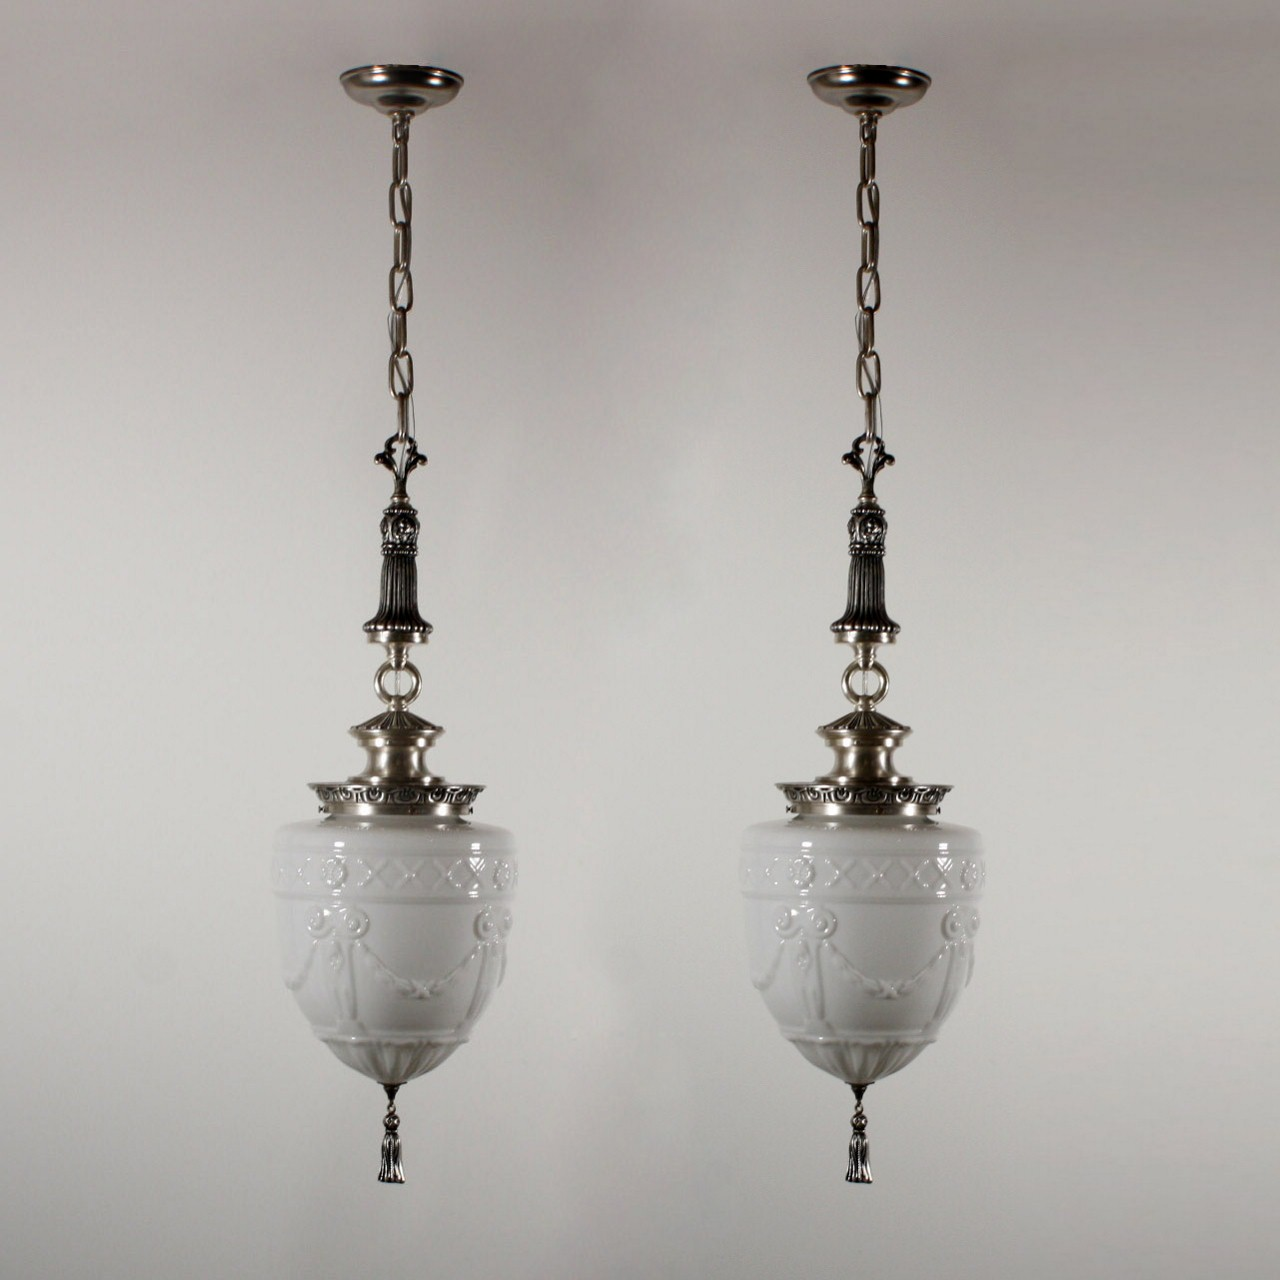 Stunning Neoclassical Antique Silver Plated Pendant Lights